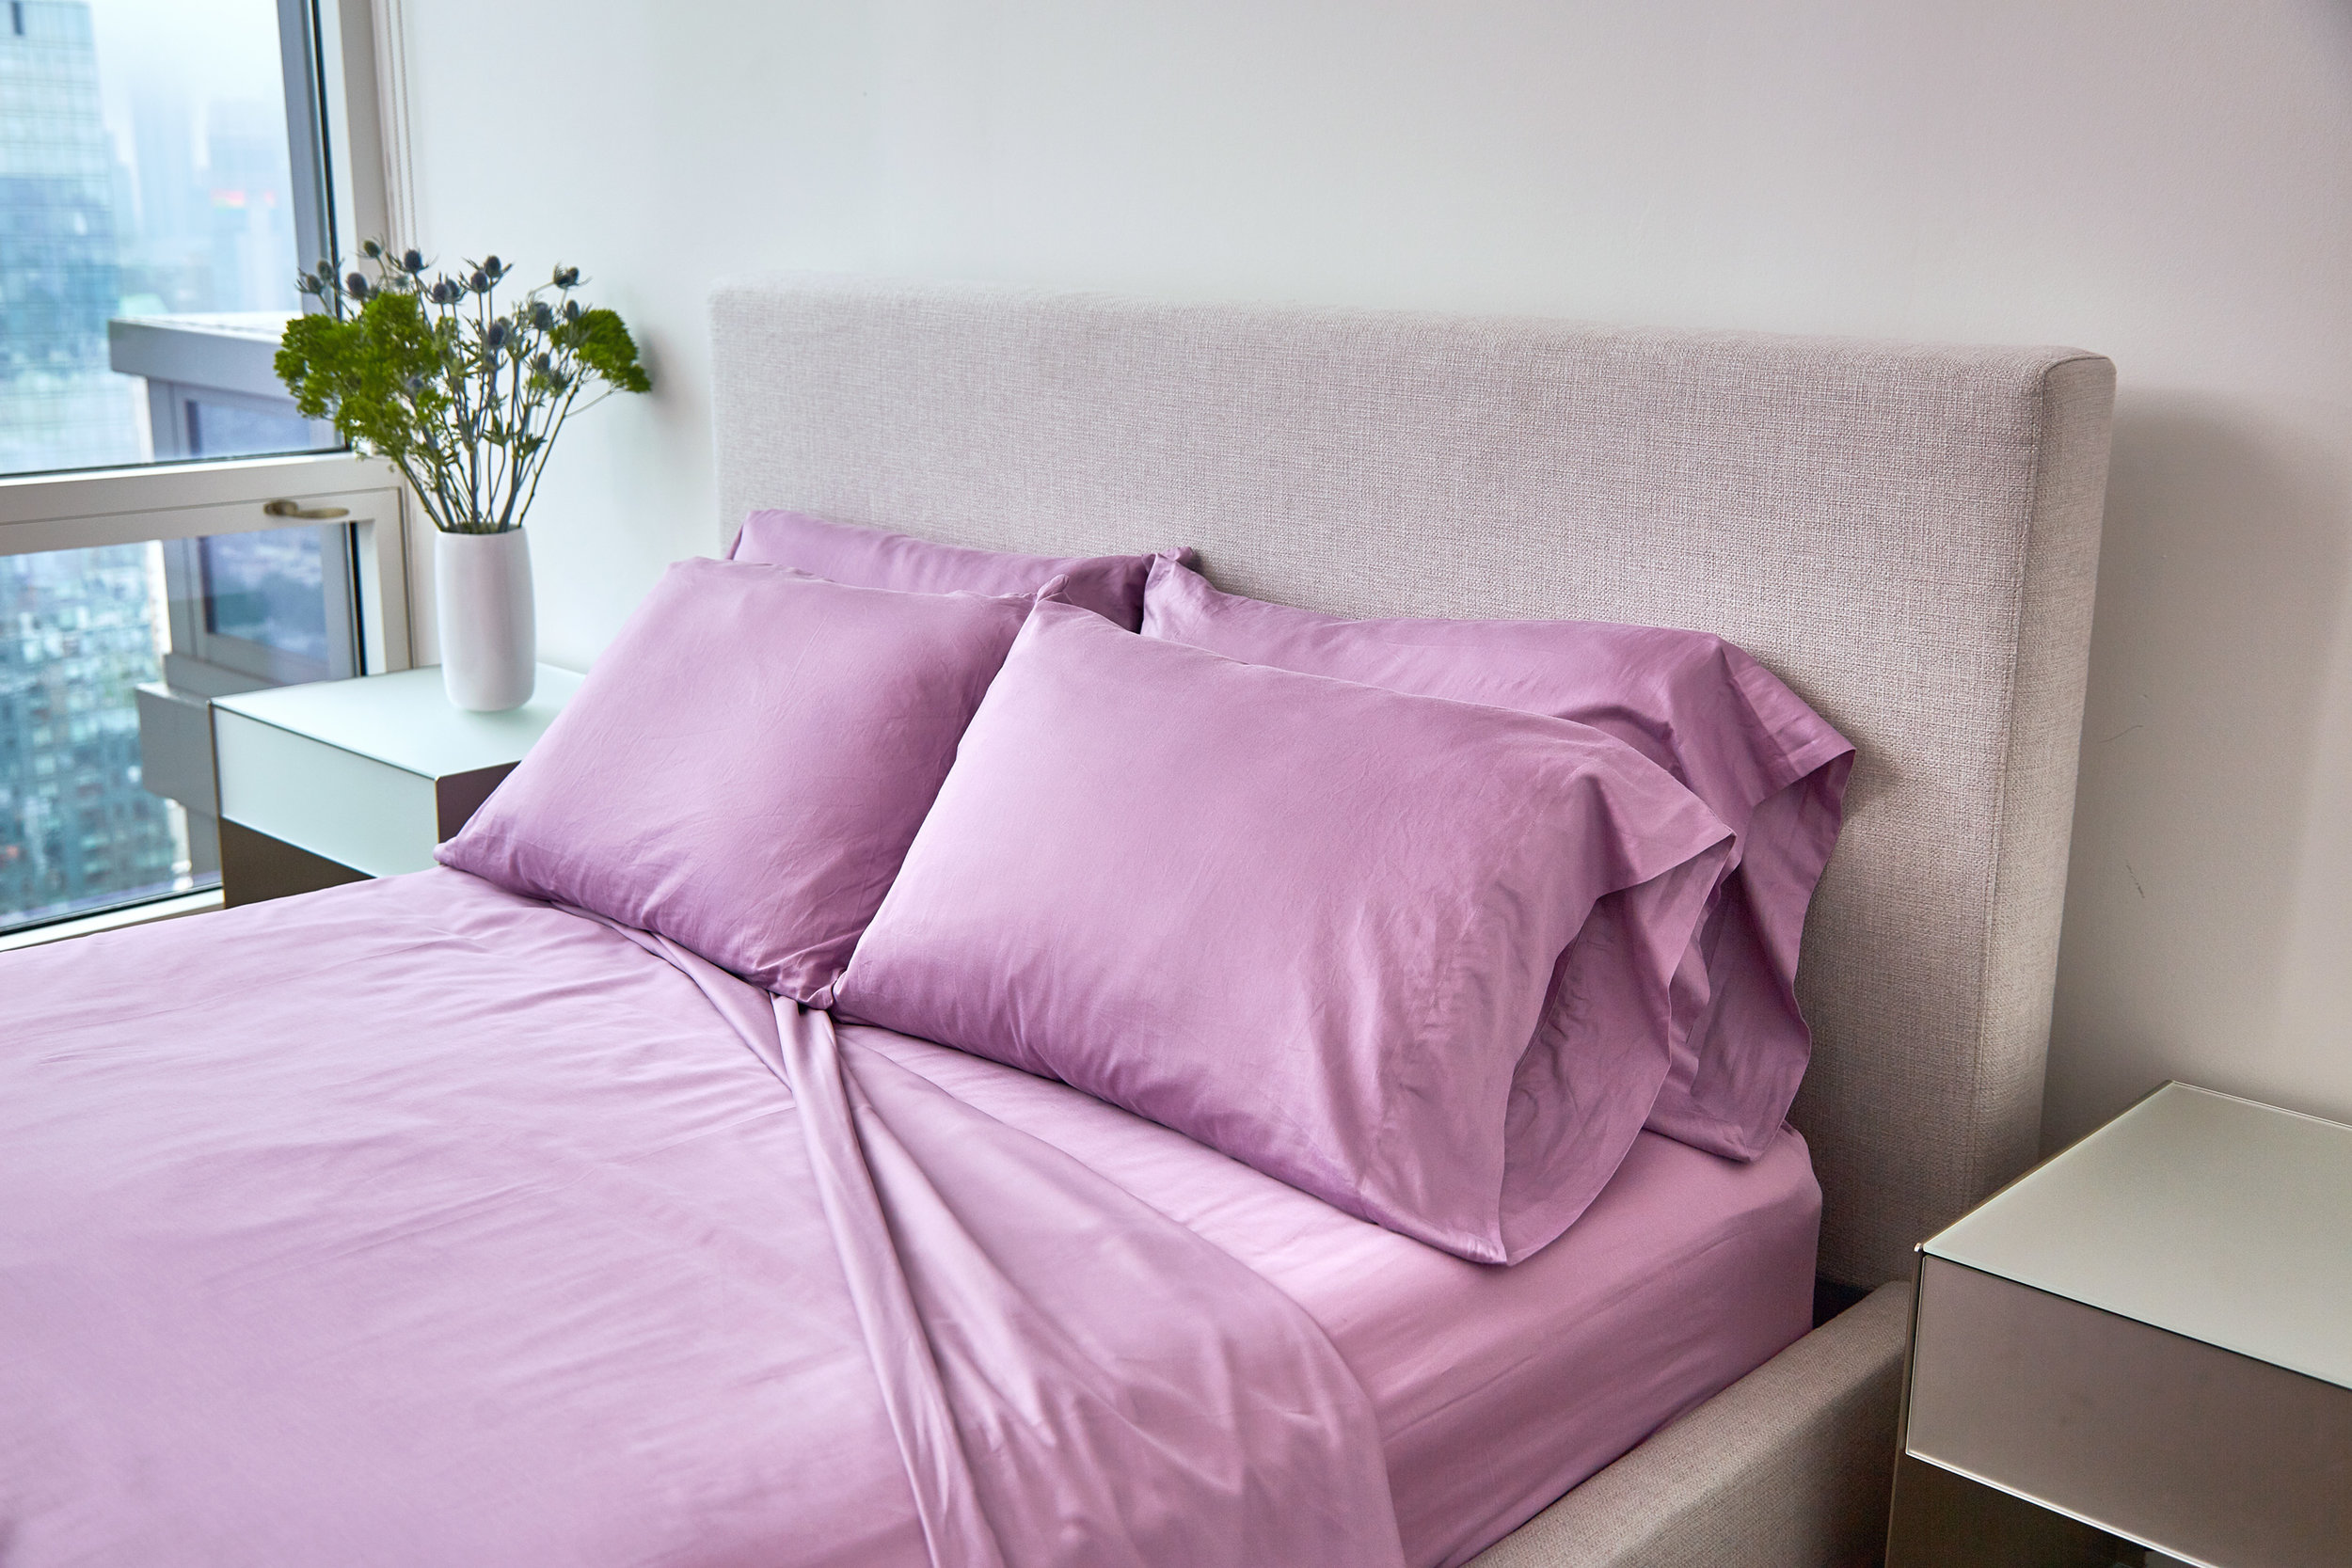 UN_FARM_TO_HOME_BED_SHEETS_LAVENDER1282_XRET.jpg